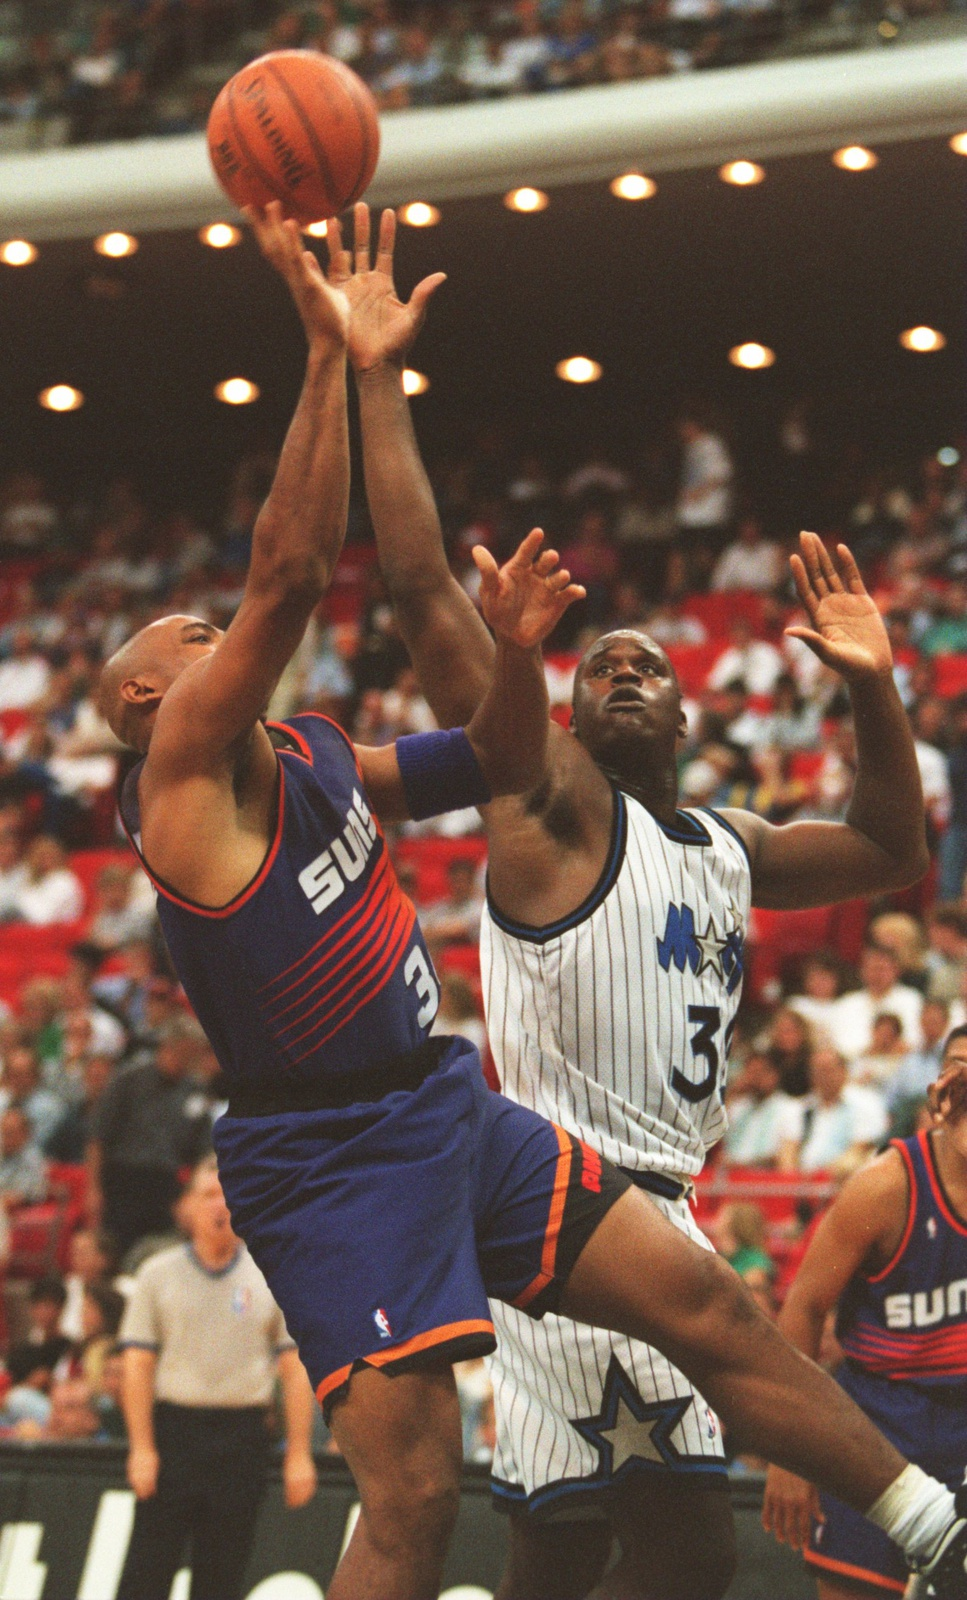 SHAQUILLE O'NEAL OF THE ORLANDO MAGIC CHALLENGES CHARLES BARKLEY OF THE PHOENIX SUNS DURING A 135-129 SUNS WIN IN ORLANDO, FLORIDA.